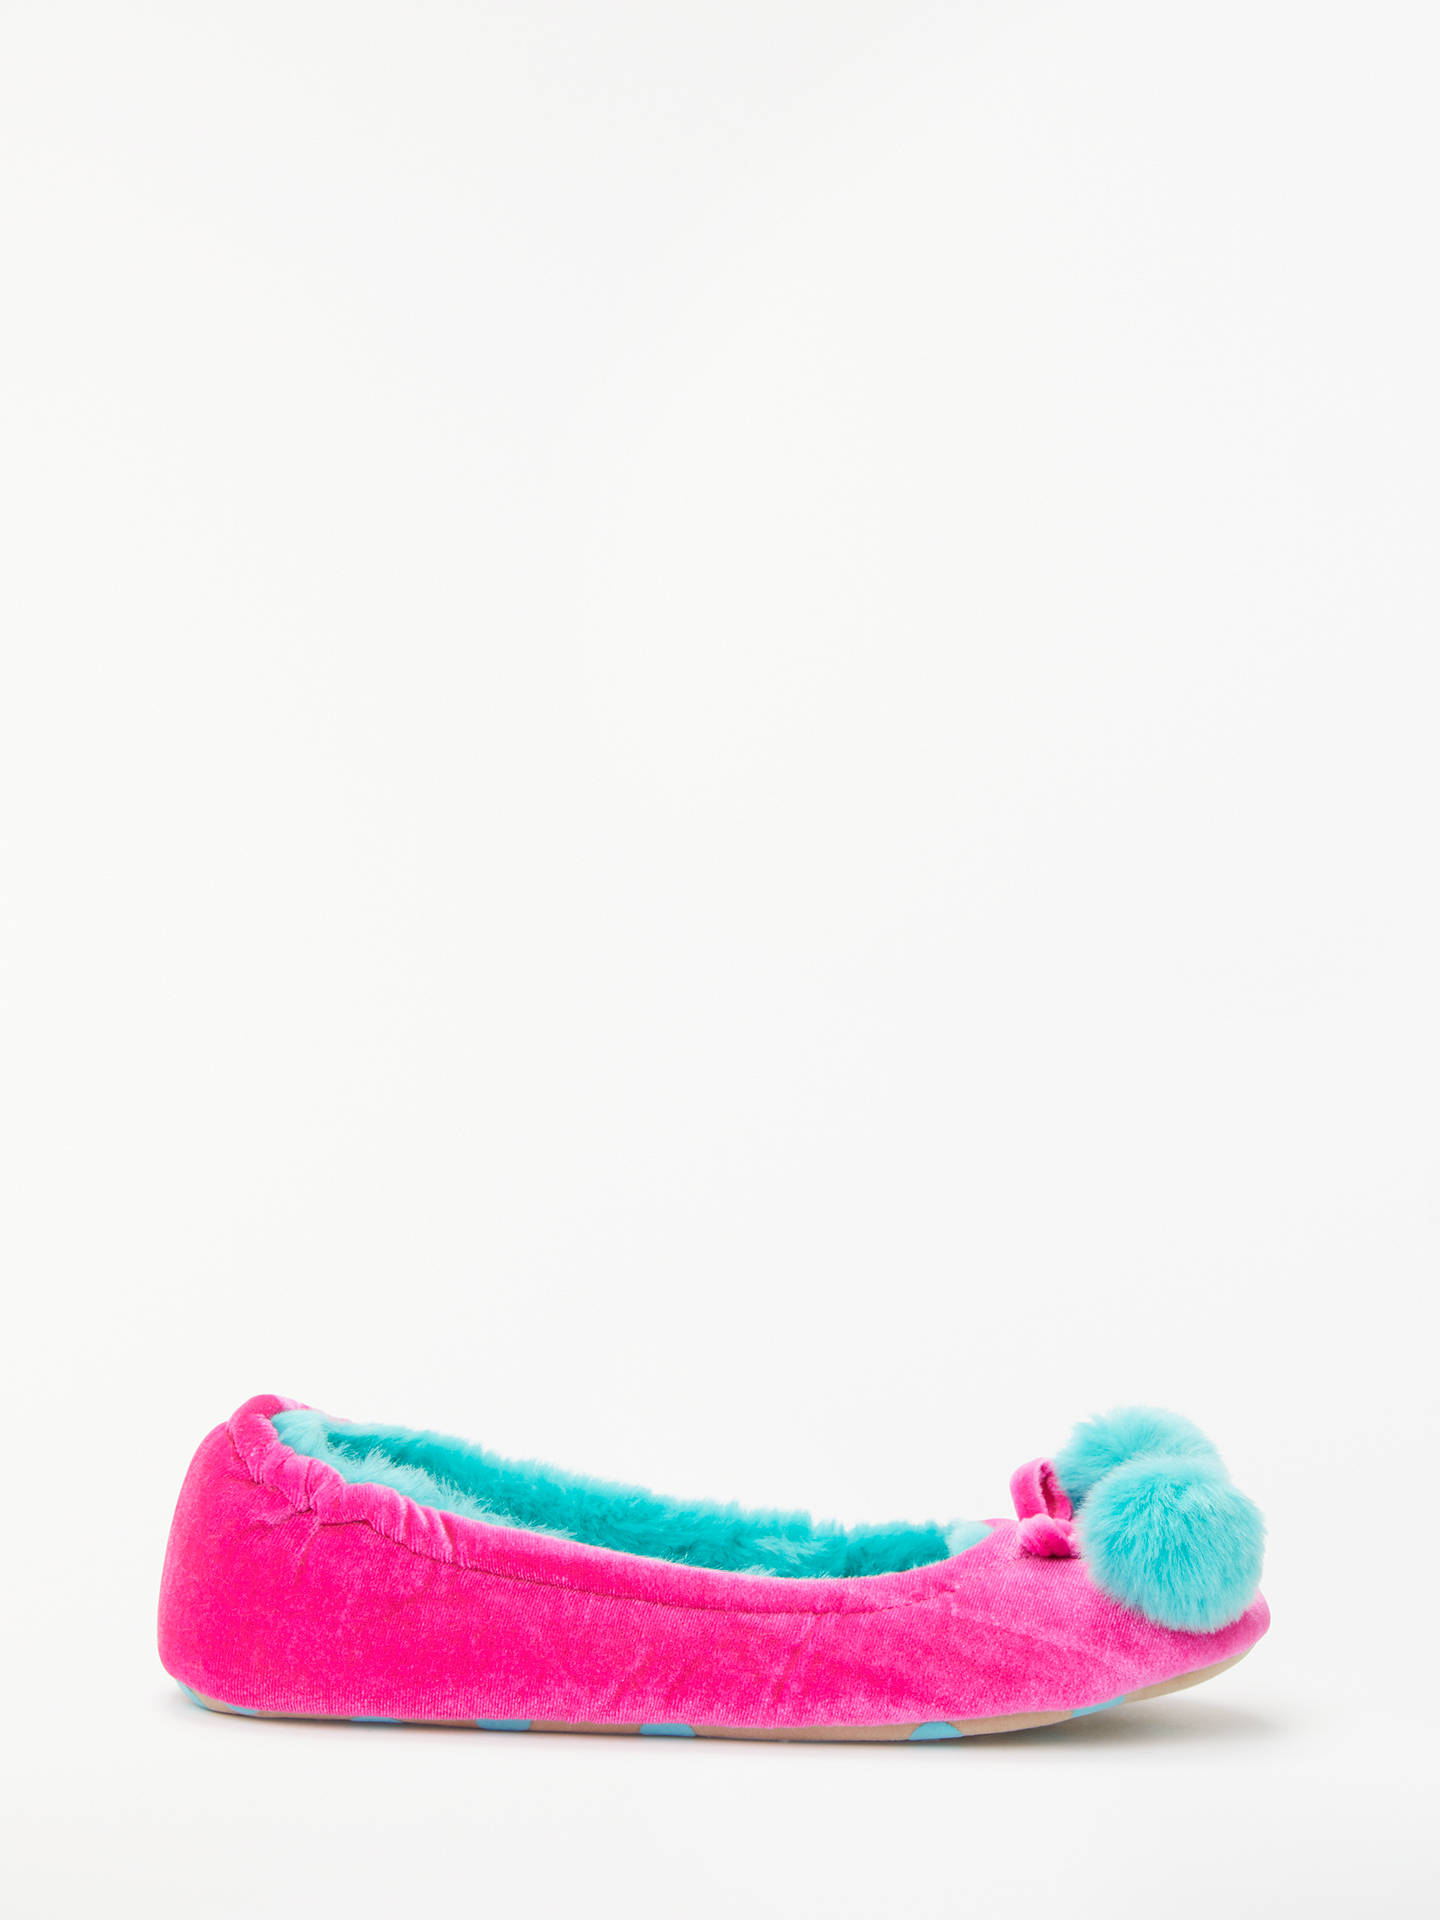 BuyBoden Velvet Pom Pom Slippers, Pop Pansy, 6 Online at johnlewis.com